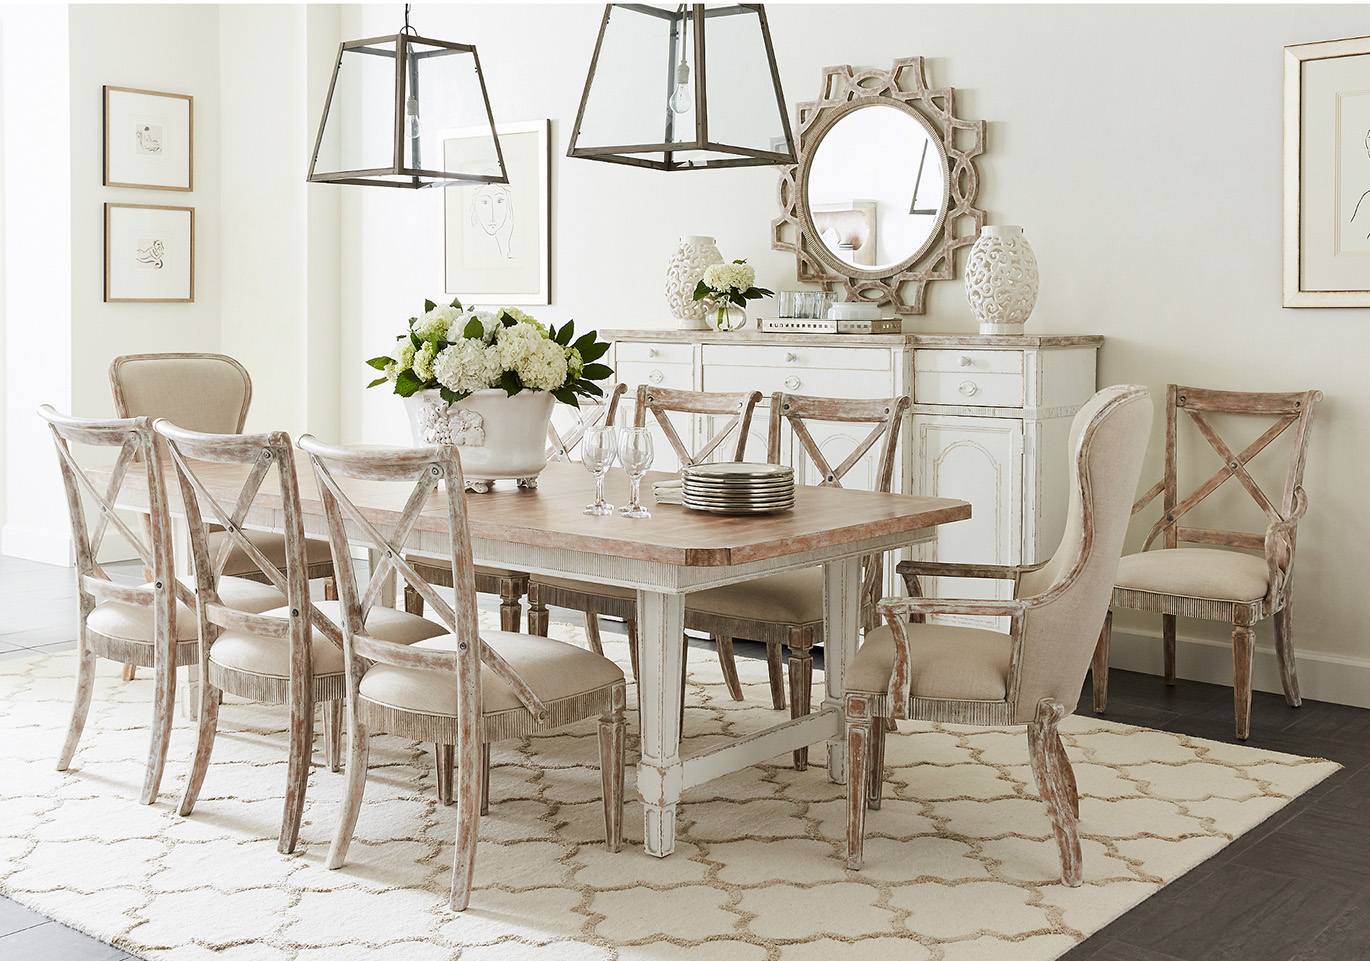 Juniper Dell dining table with chairs